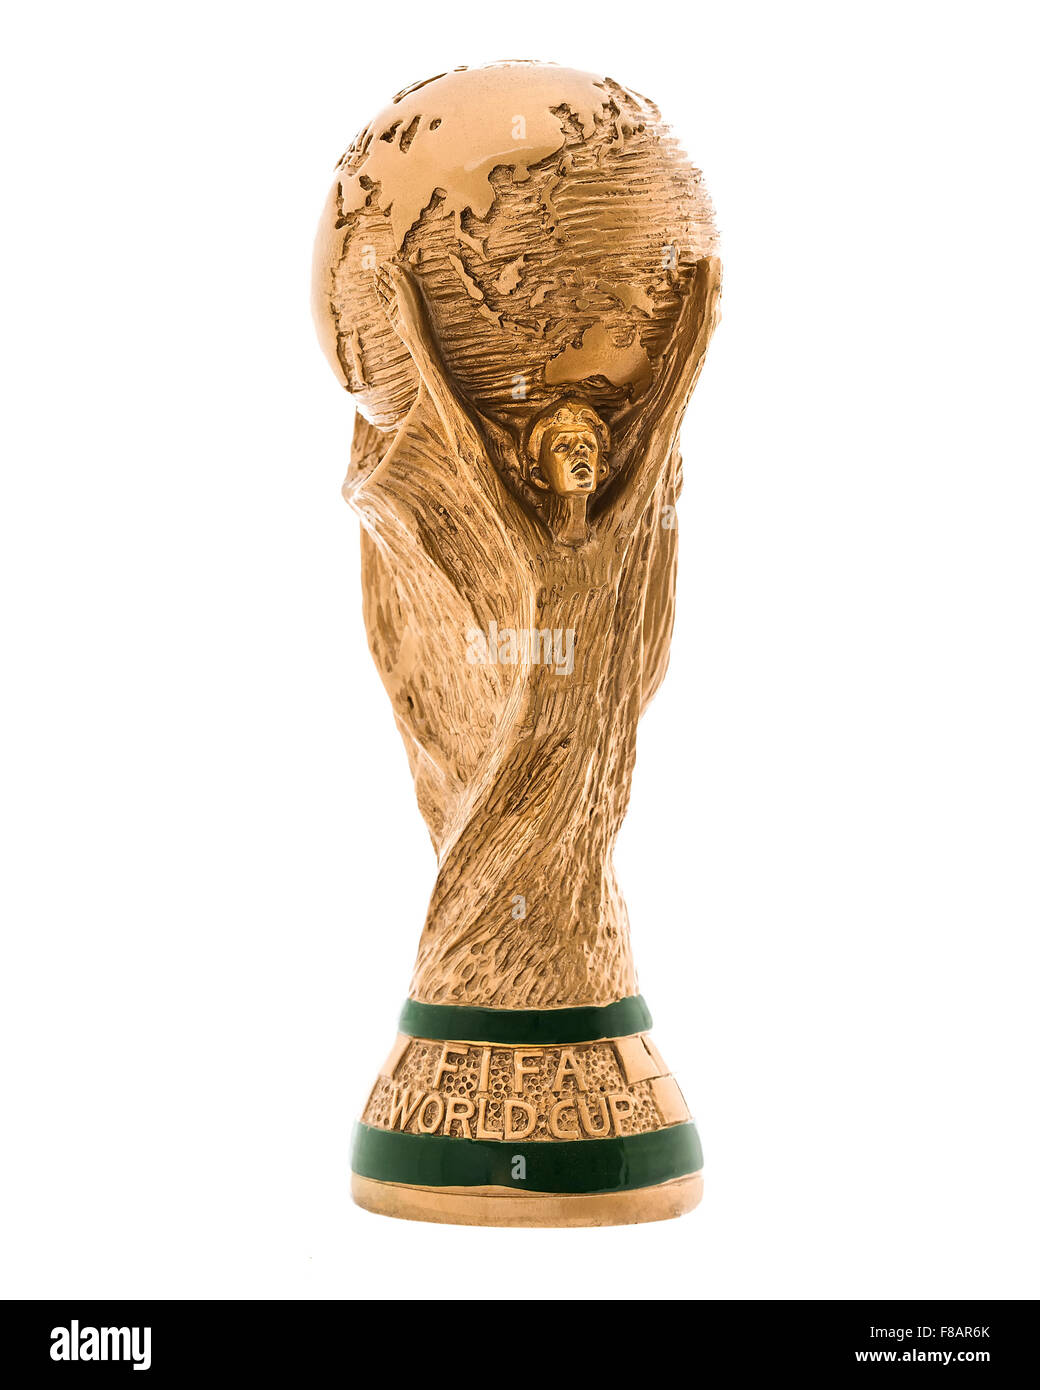 FIFA World Cup Trophy on a white Background,  'FIFA World Cup Trophy', was introduced in 1974 - Stock Image